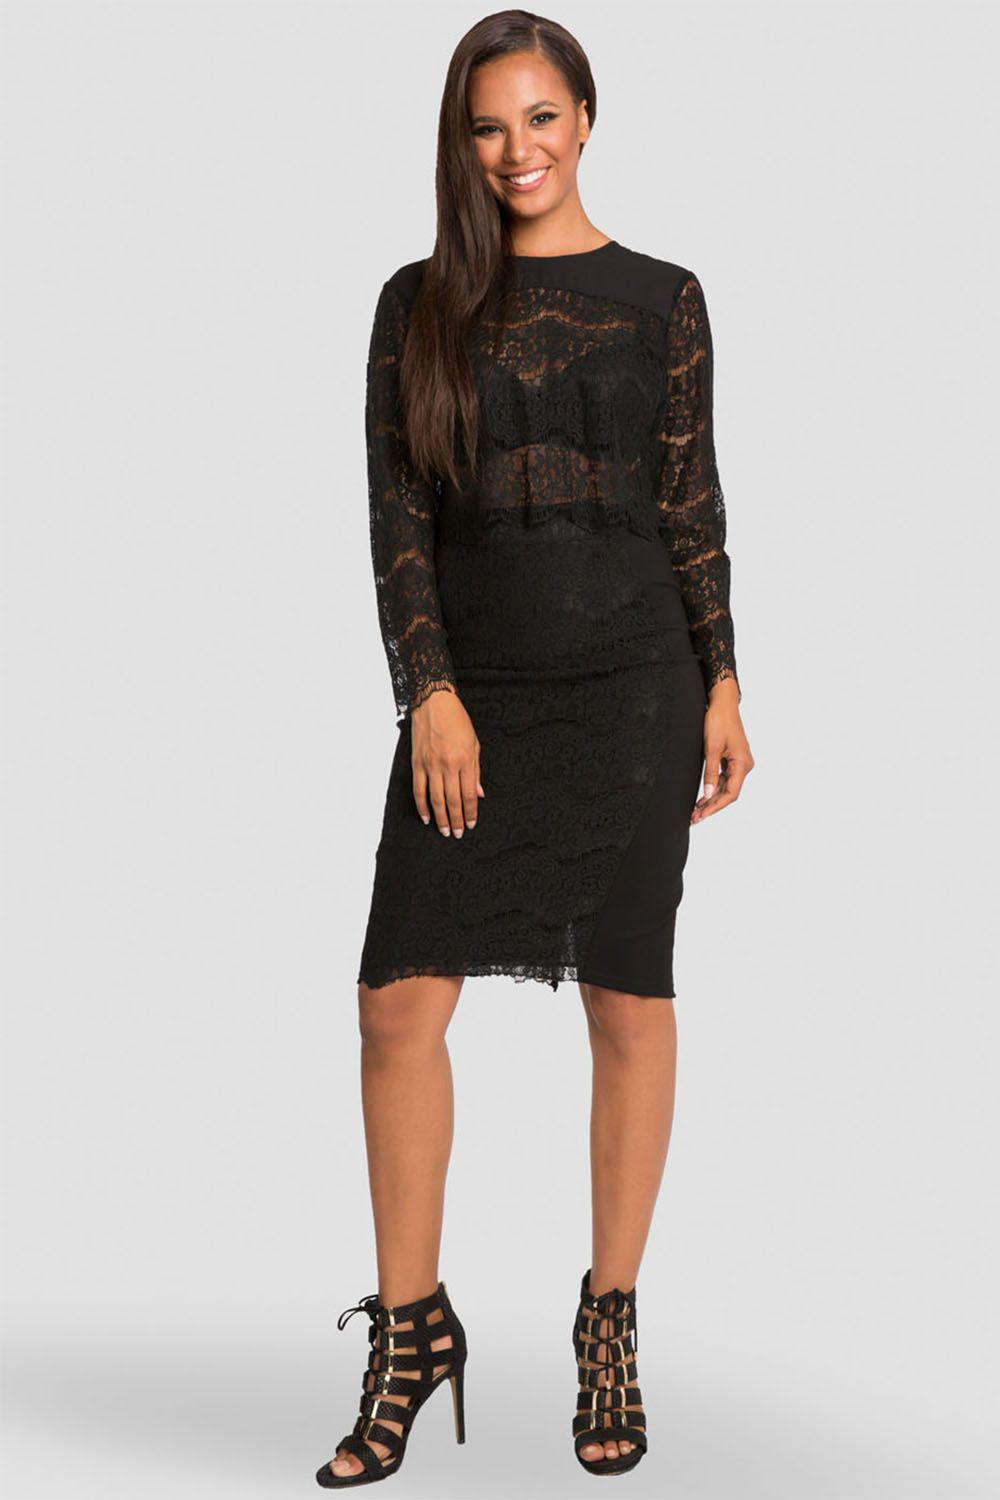 Tori Black Pencil Skirt in Ponte and Lace